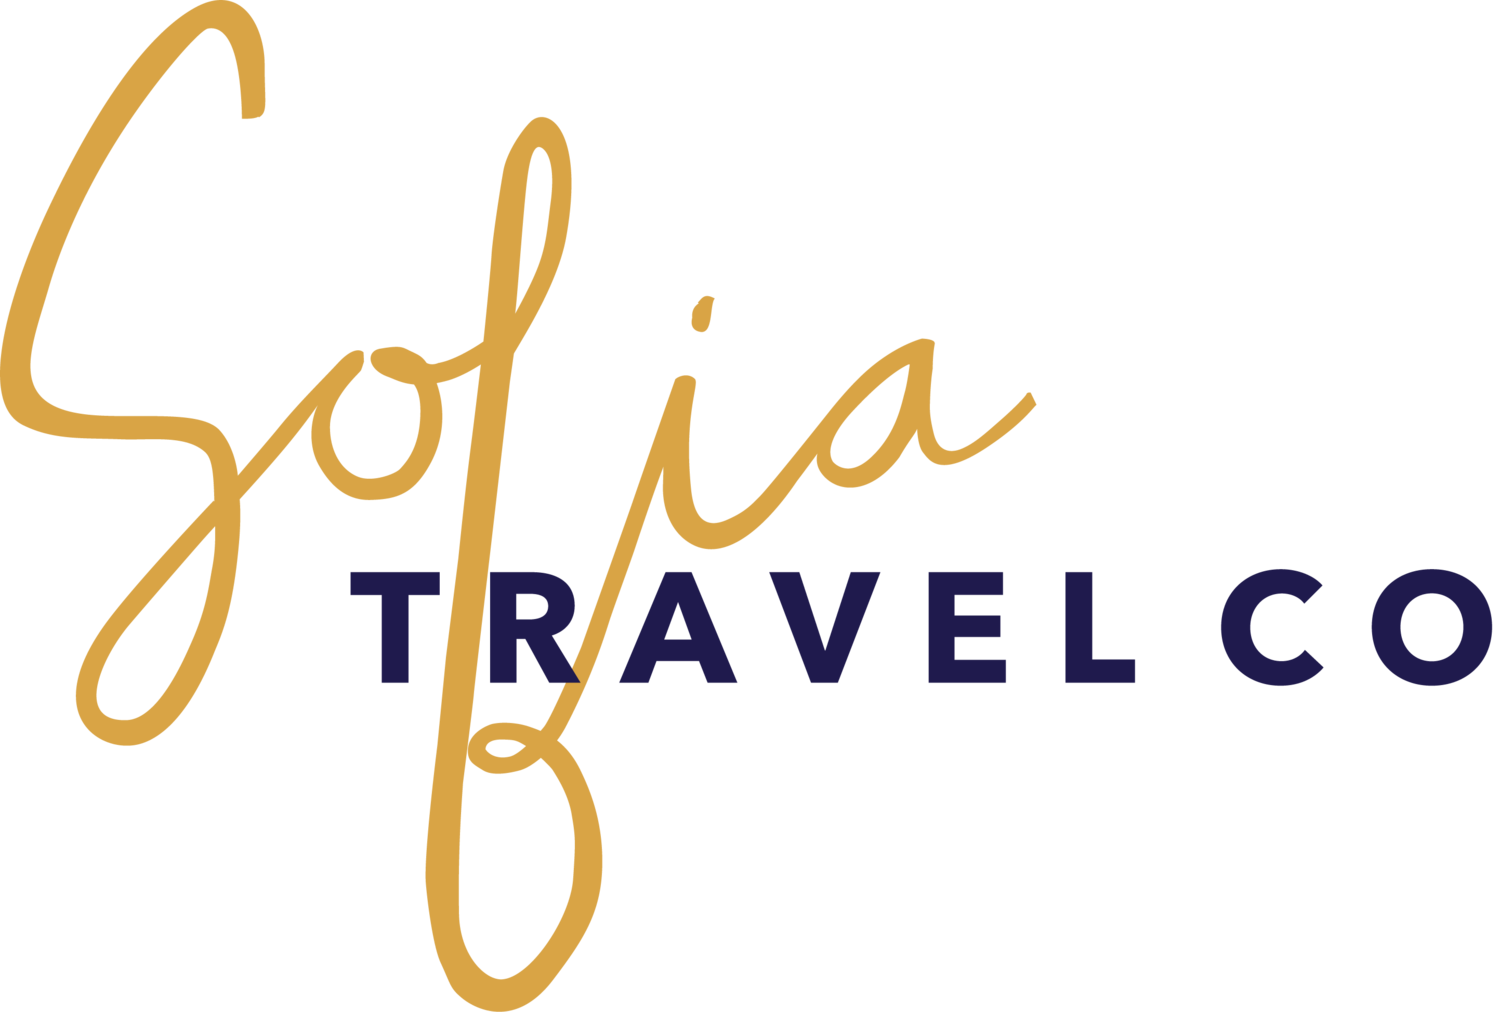 Sofia Travel Co.